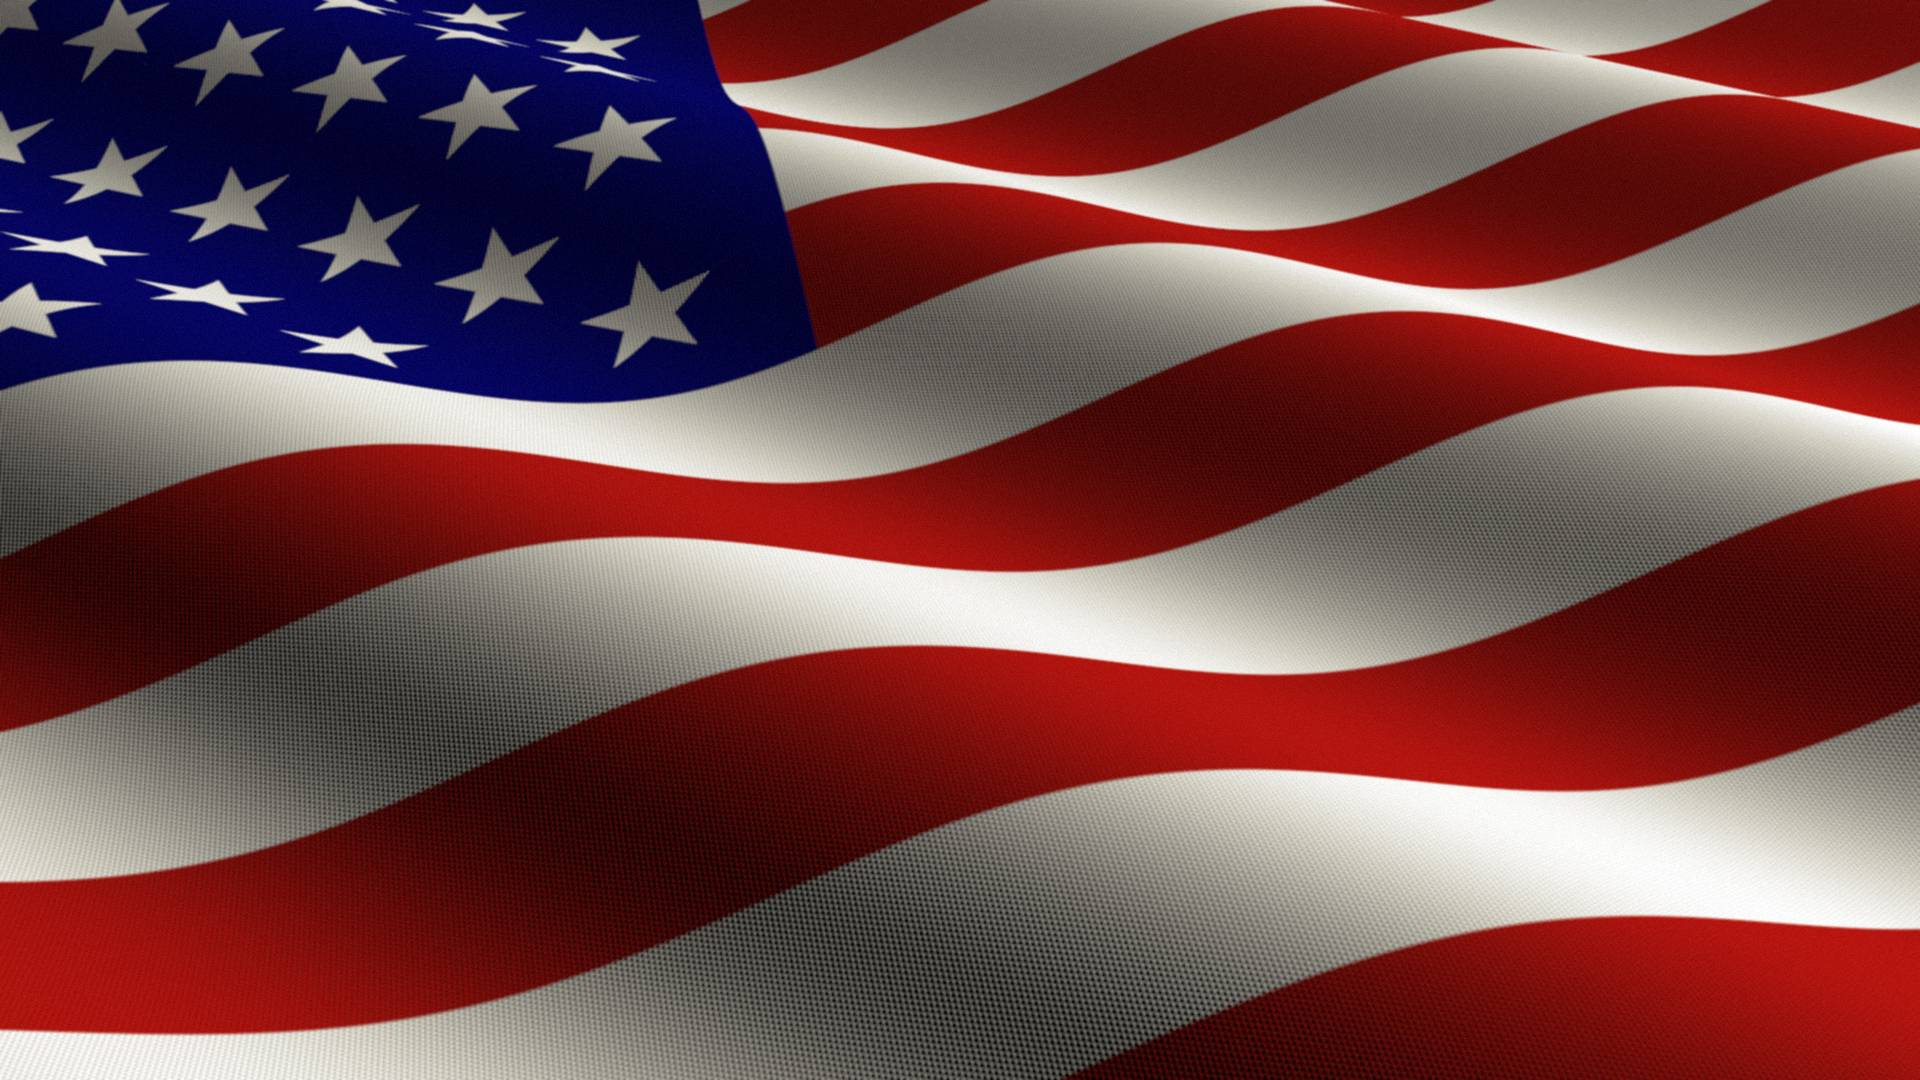 american flag desktop wallpapers wallpaper cave fourth of july images clipart free download fourth of july images clipart